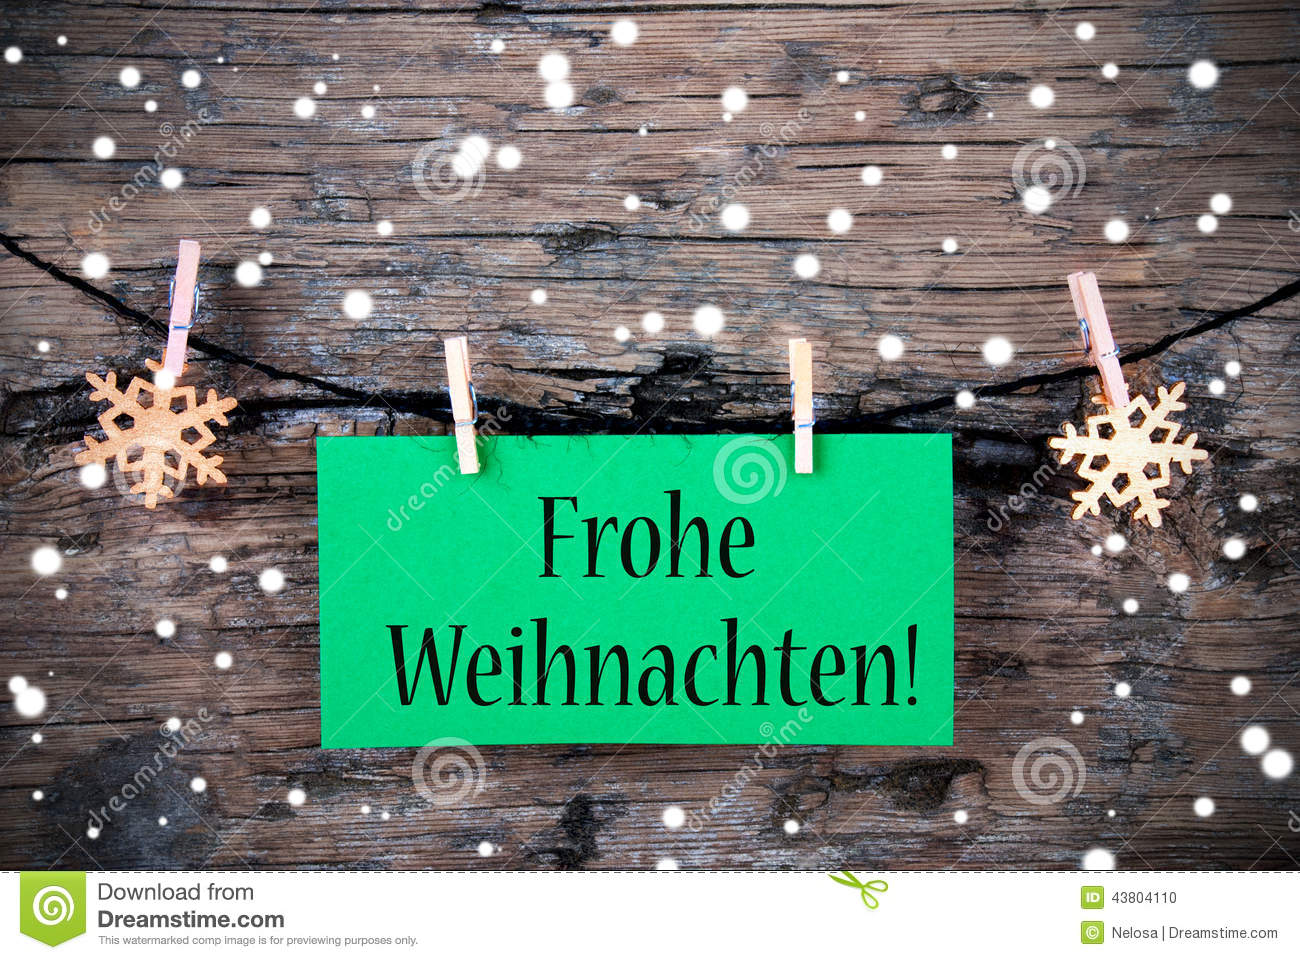 Frohe Weihnachten Shabby.Label With Frohe Weihnachten Snowy Background Stock Photo